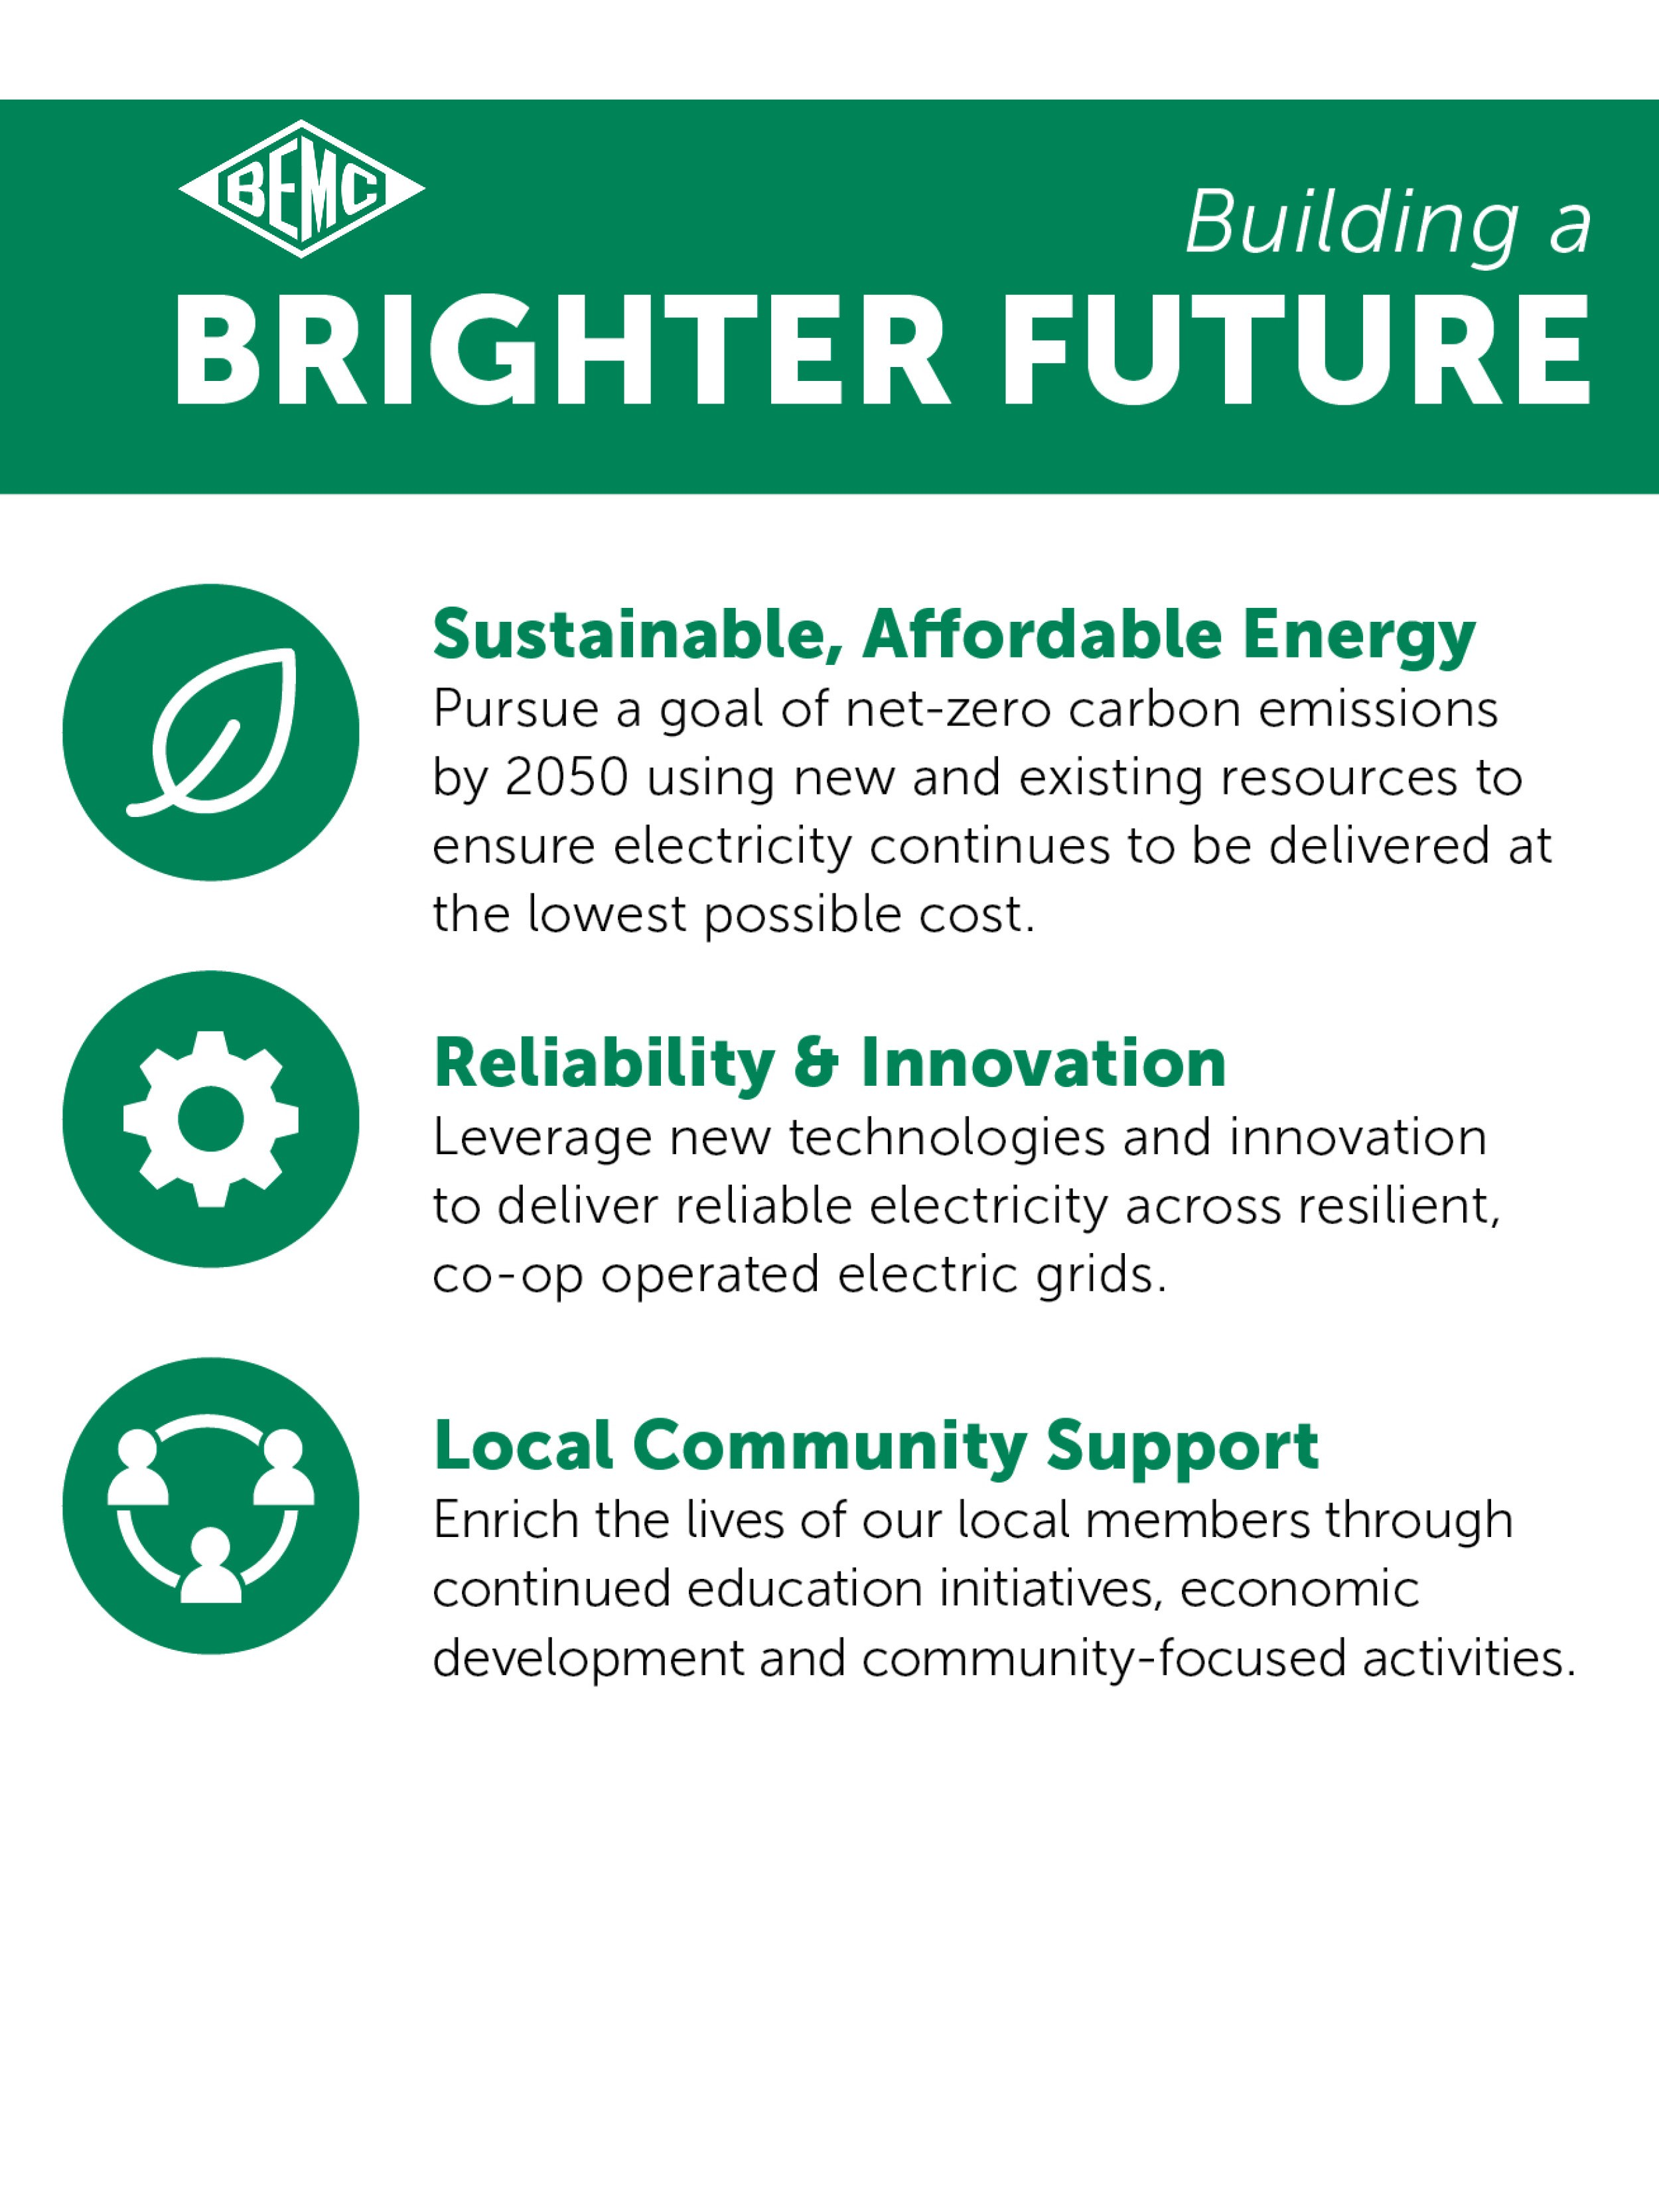 Brunswick Electric Announces Efforts to Build a Brighter Future for Local Communities